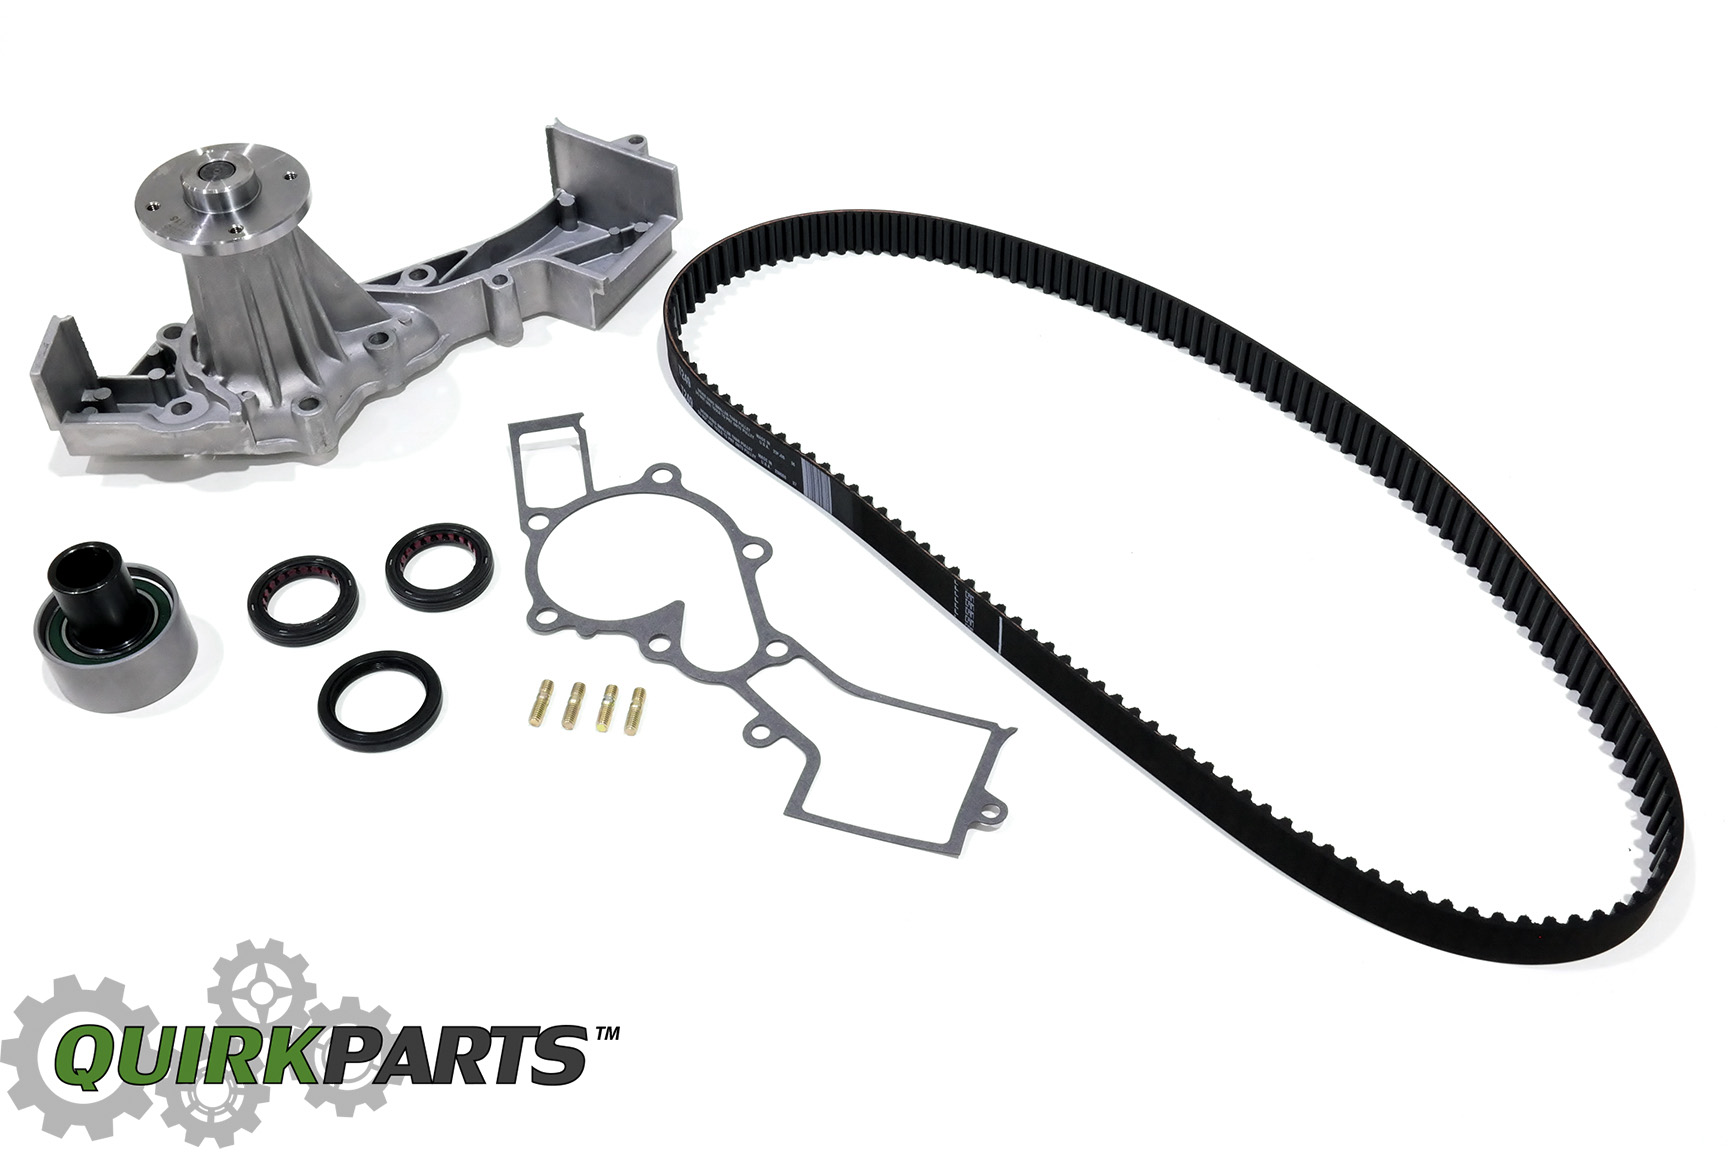 Nissan Timing Belt & Component Kit Pathfinder Frontier